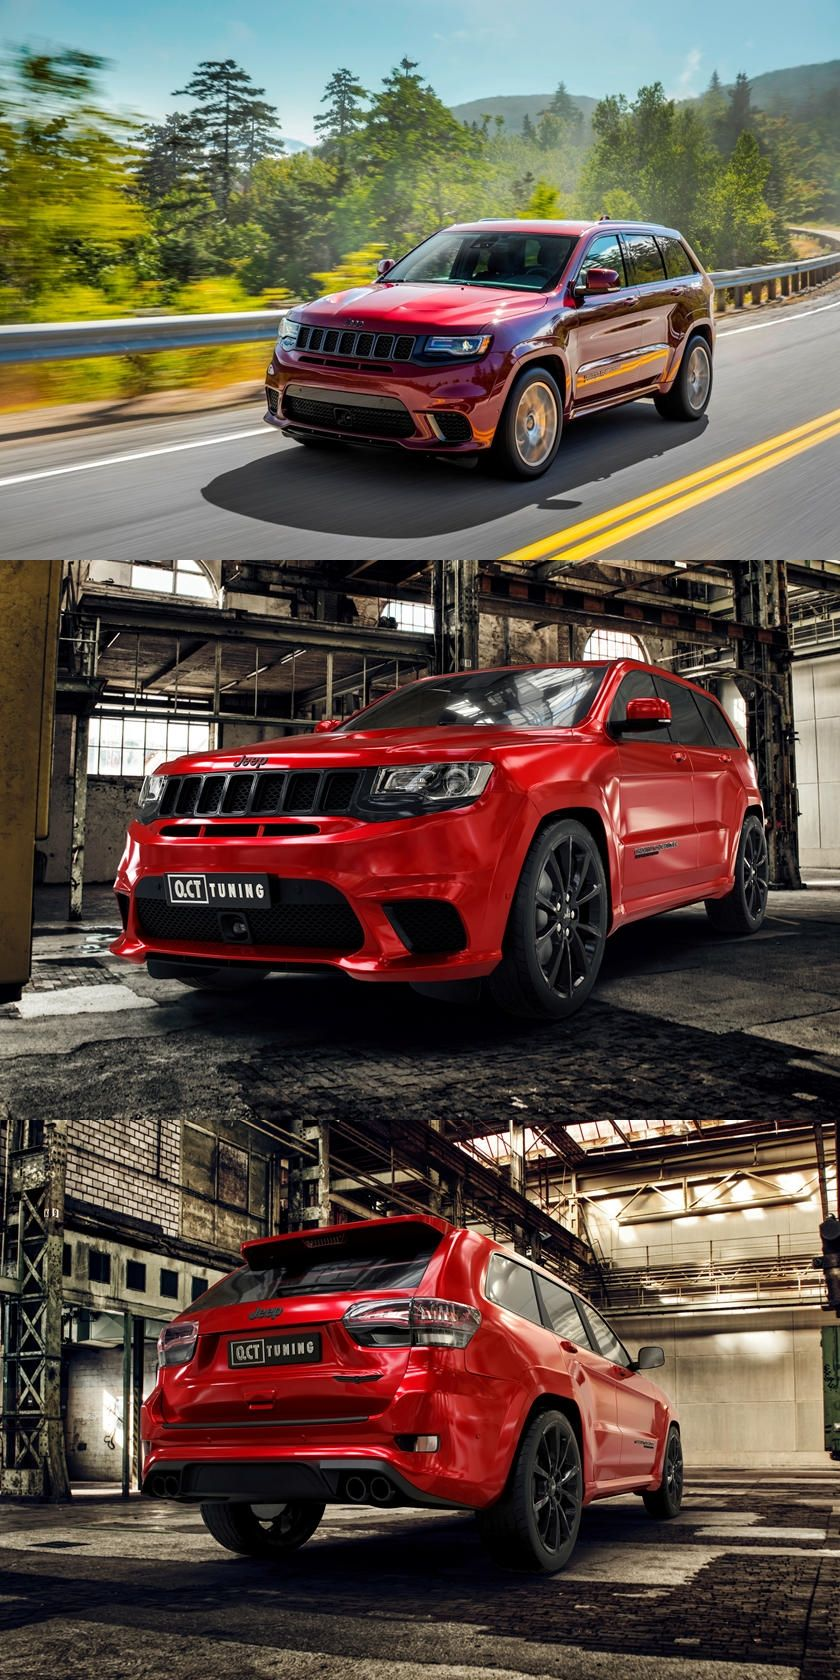 888 Hp Jeep Trackhawk Hellhound Delivers Supercar Performance 0 62 Mph In The Jeep Trackhawk Now Takes Just Three Seconds In 2020 Jeep Super Cars Performance